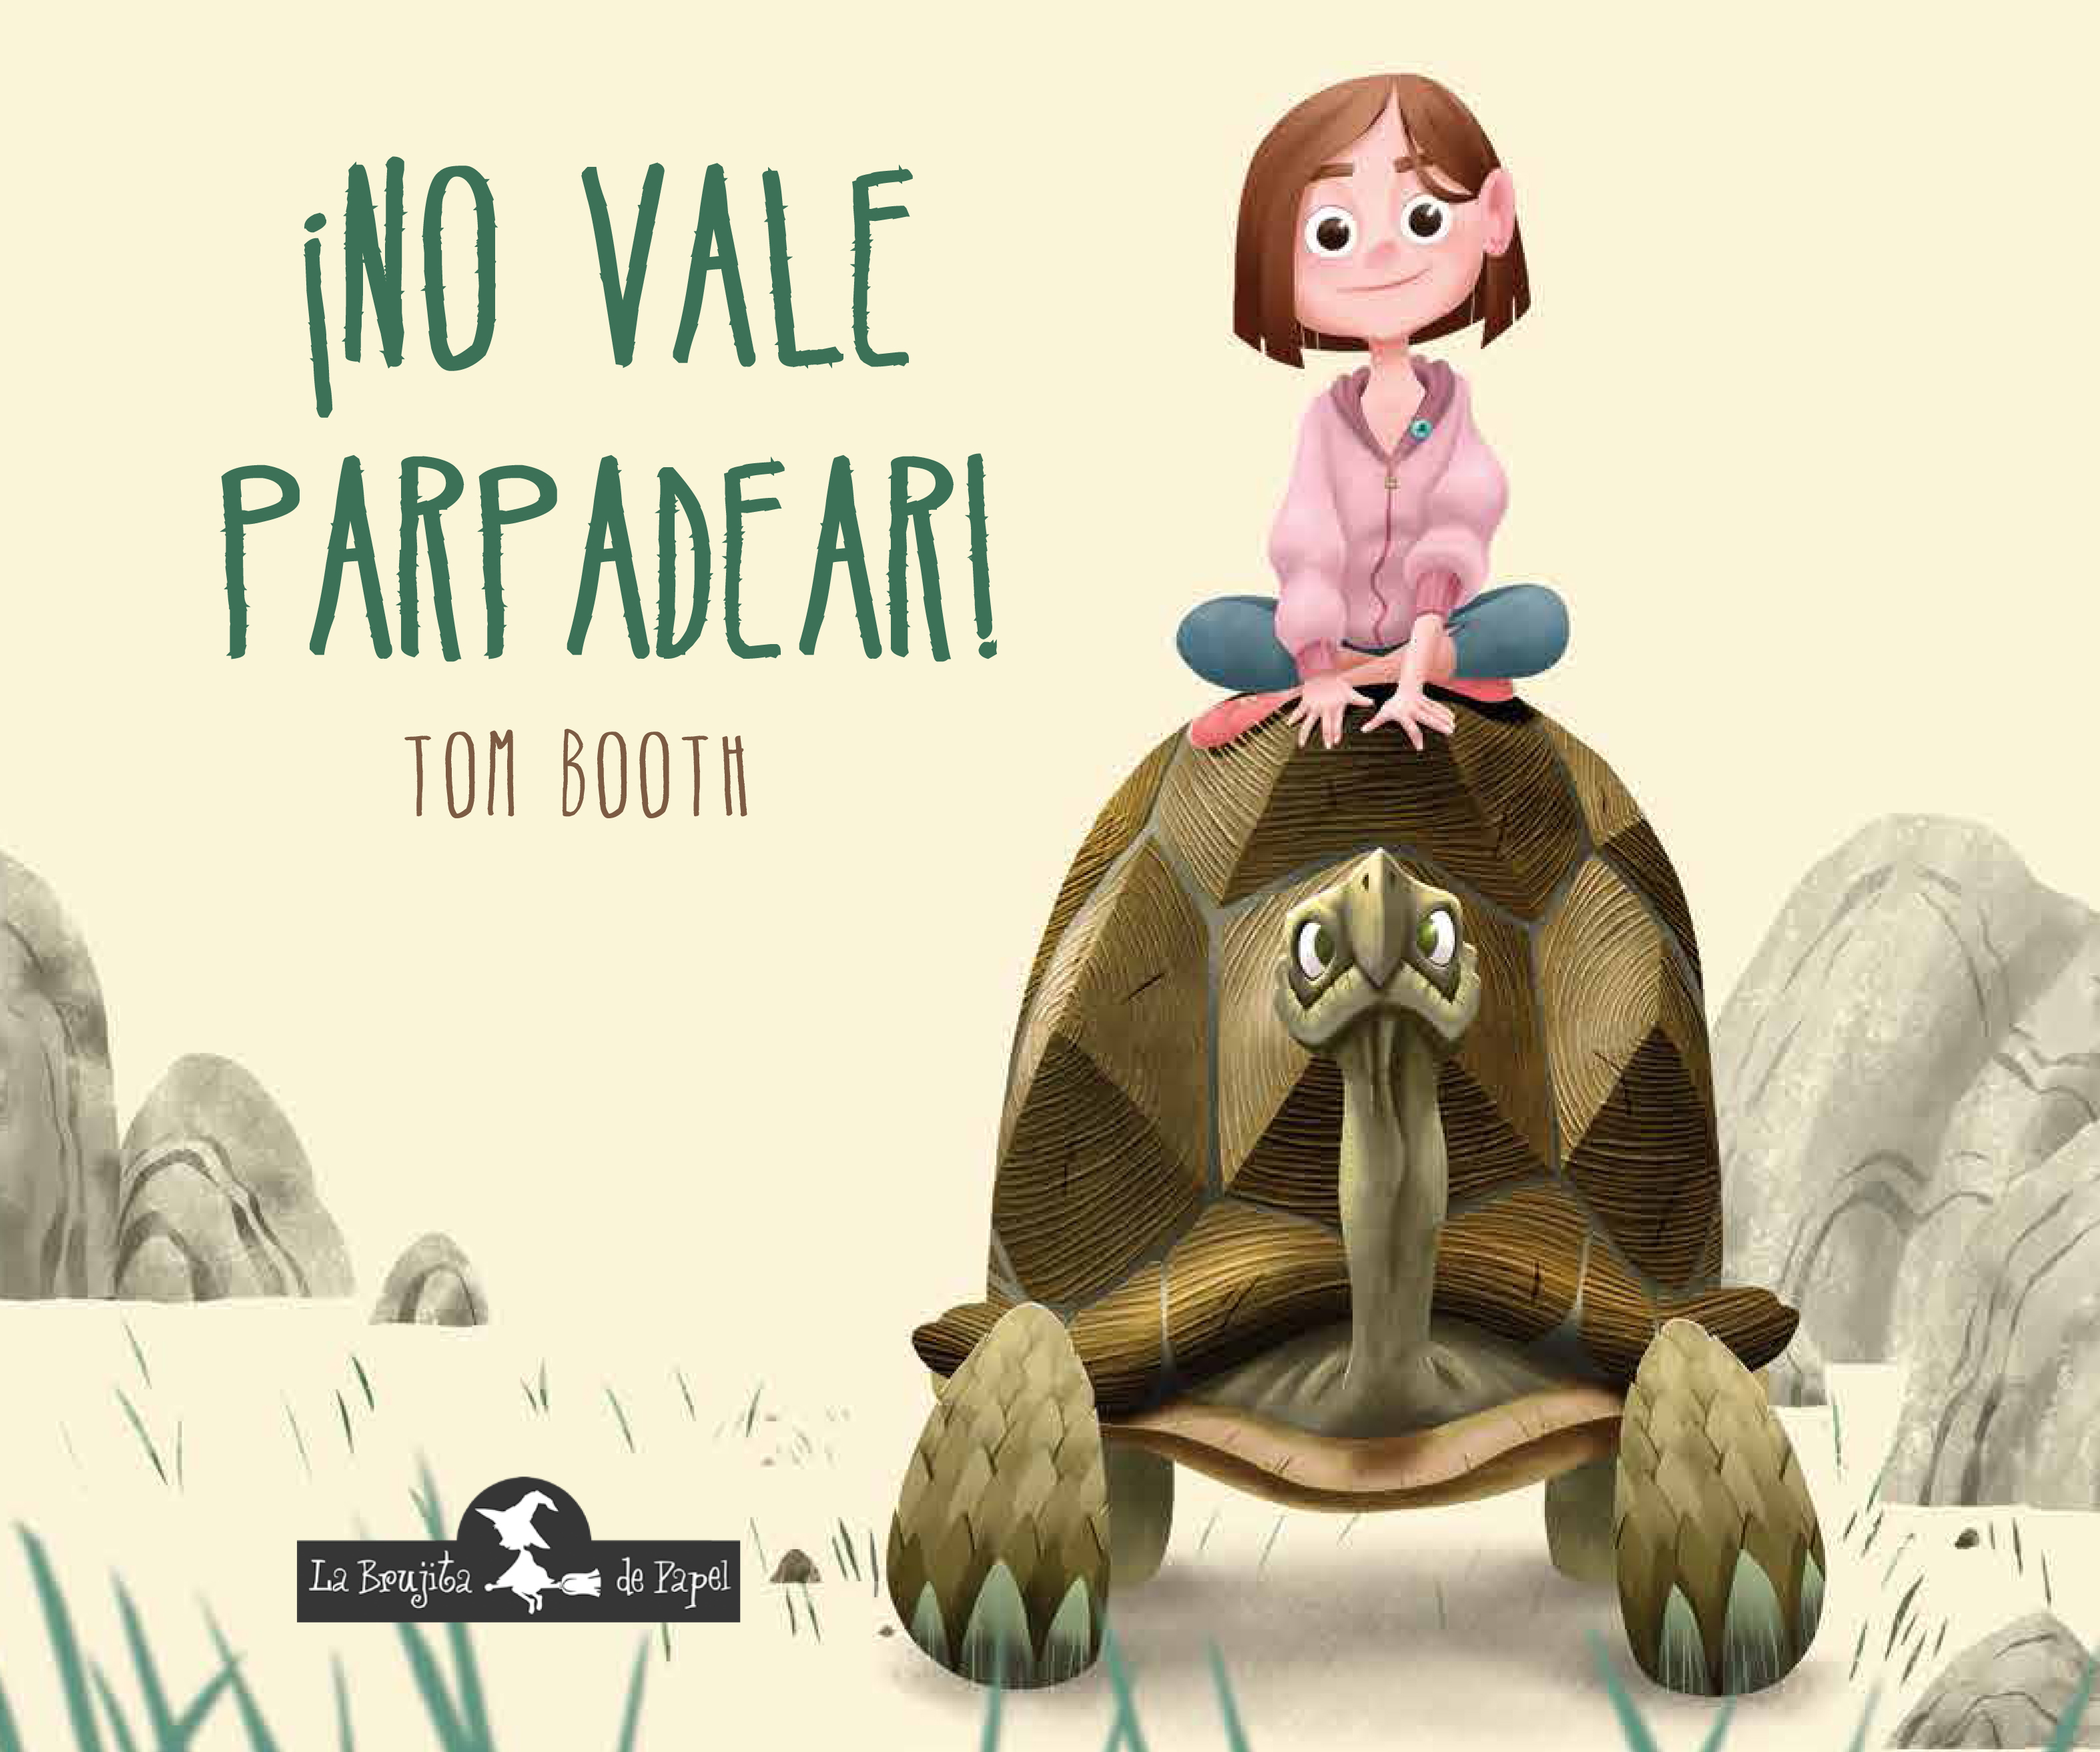 ¡No vale parpadear! - Booth Tom